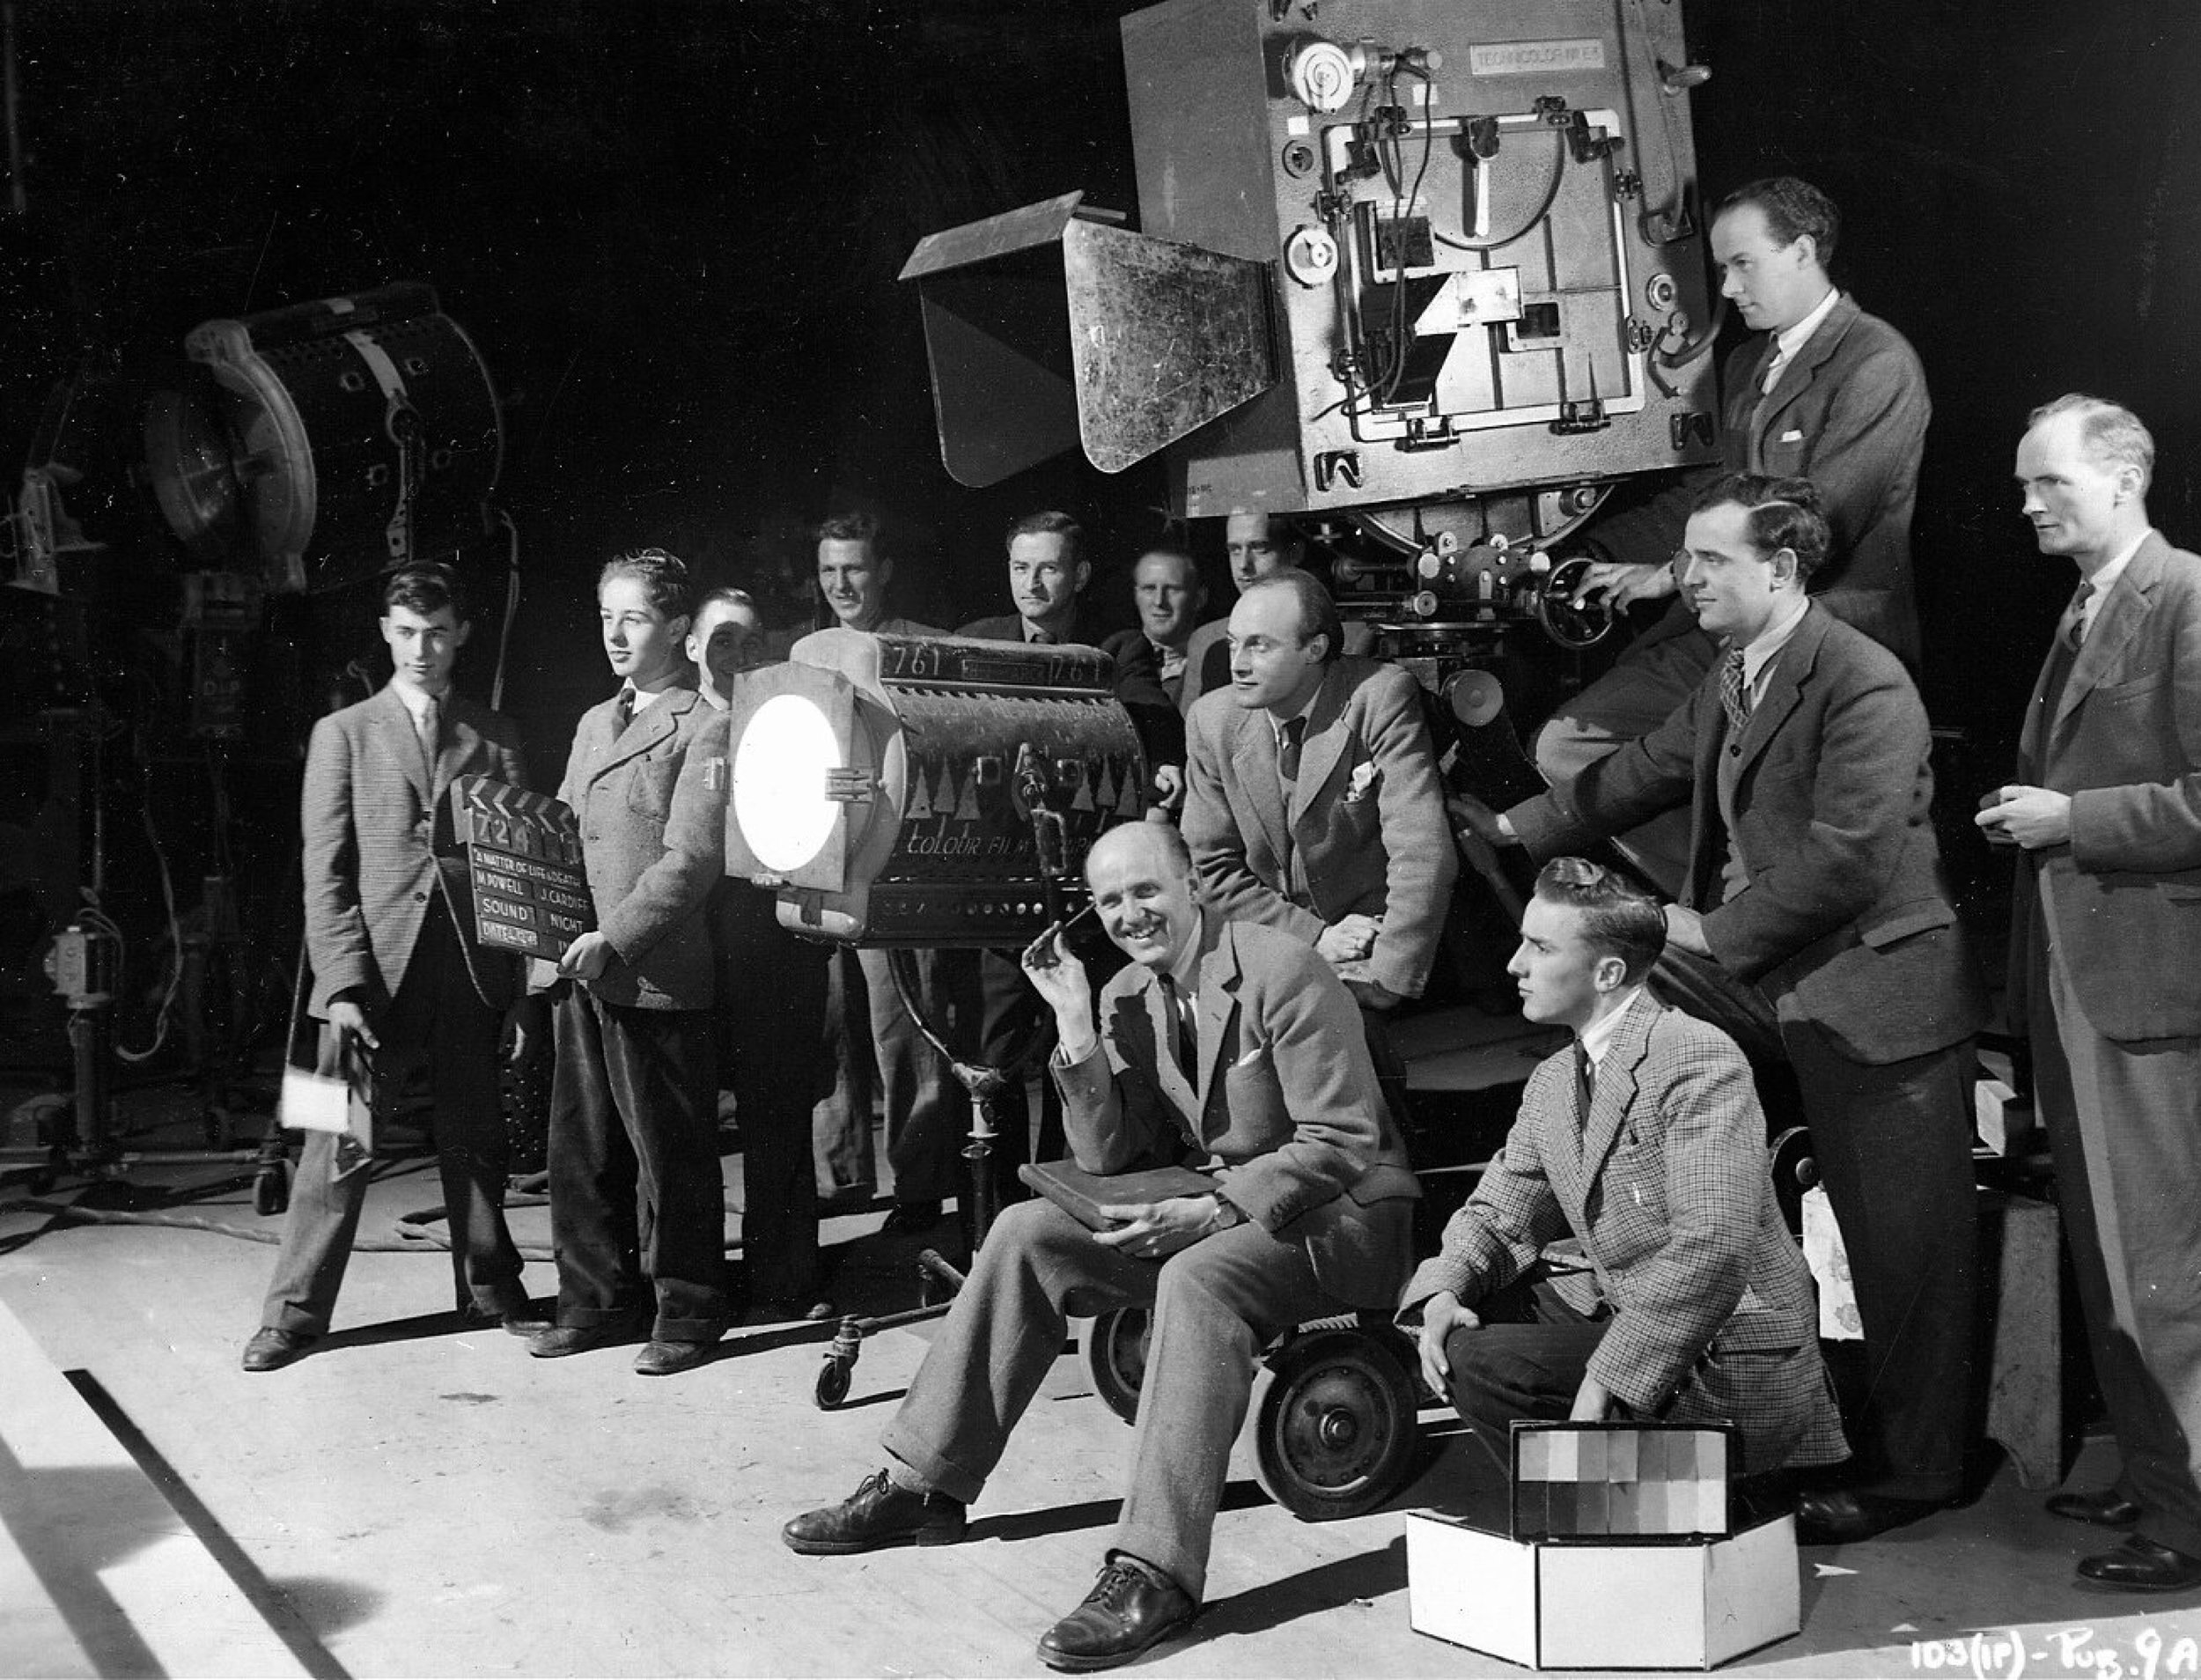 Co-director Michael Powell with the crew